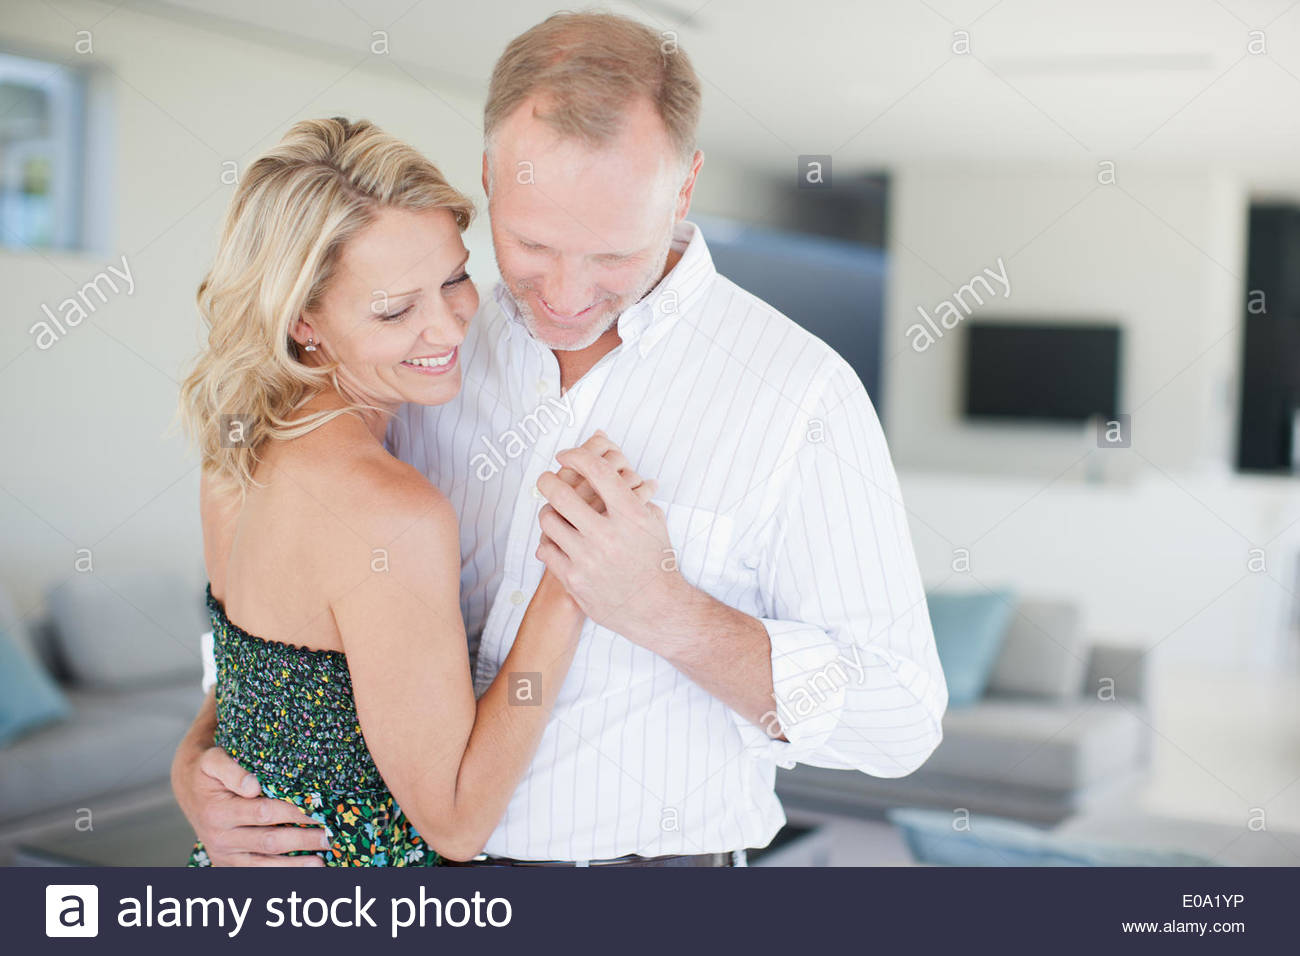 Couple dancing in living room - Stock Image